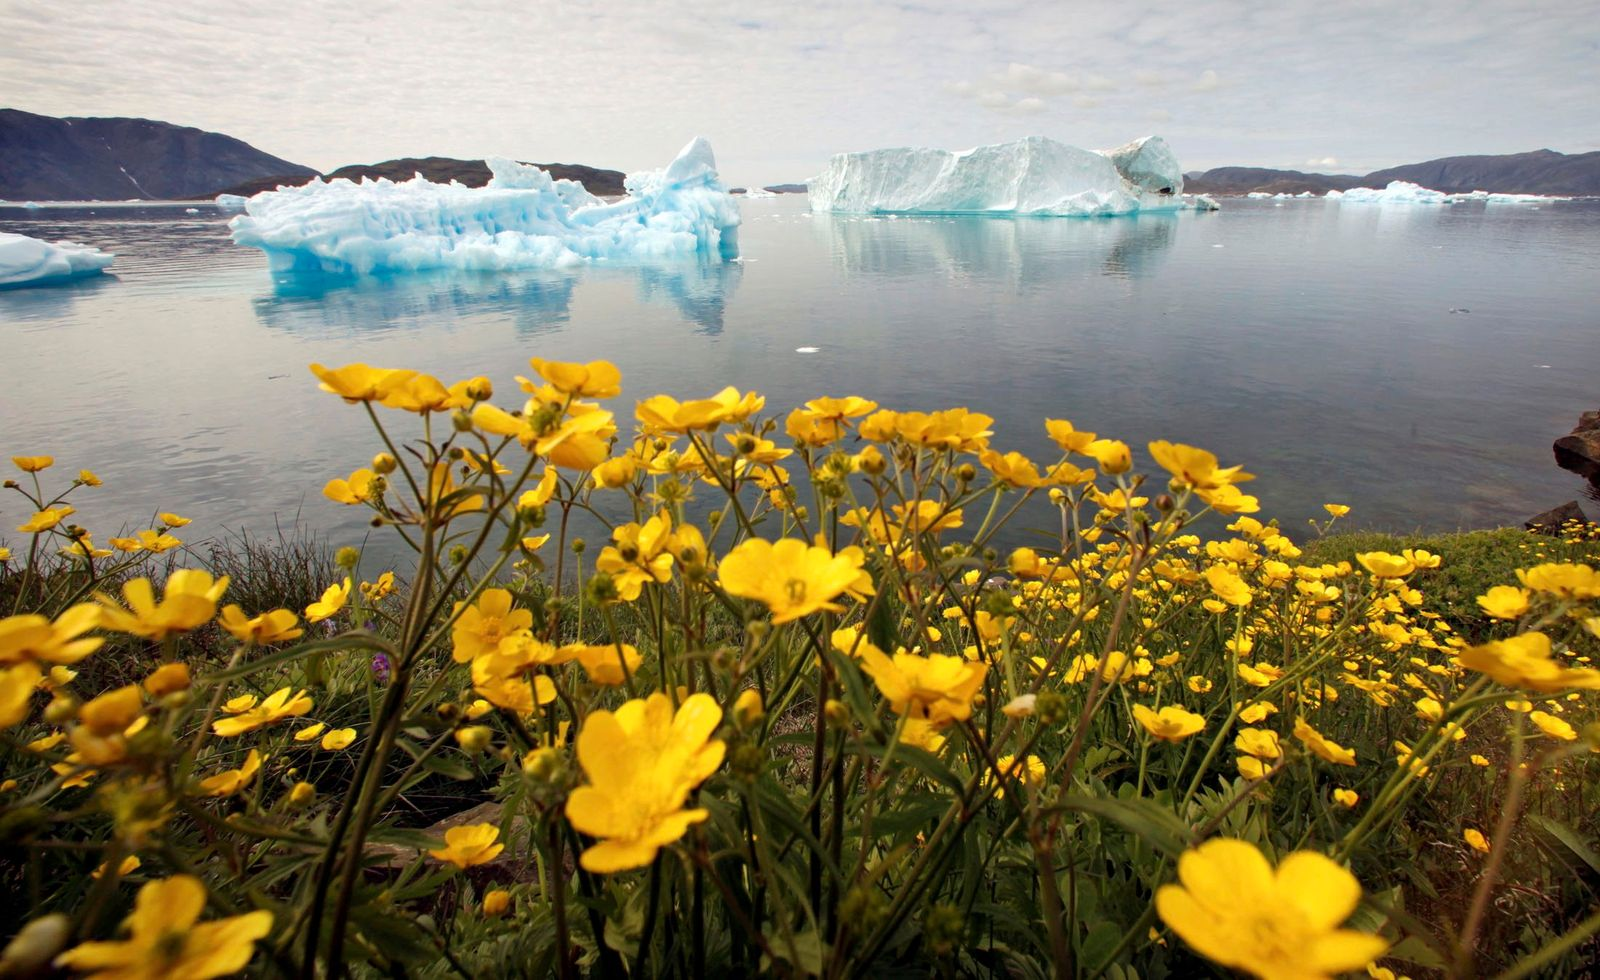 FILE PHOTO: Wildflowers bloom on a hill overlooking a fjord near the south Greenland town of Narsaq